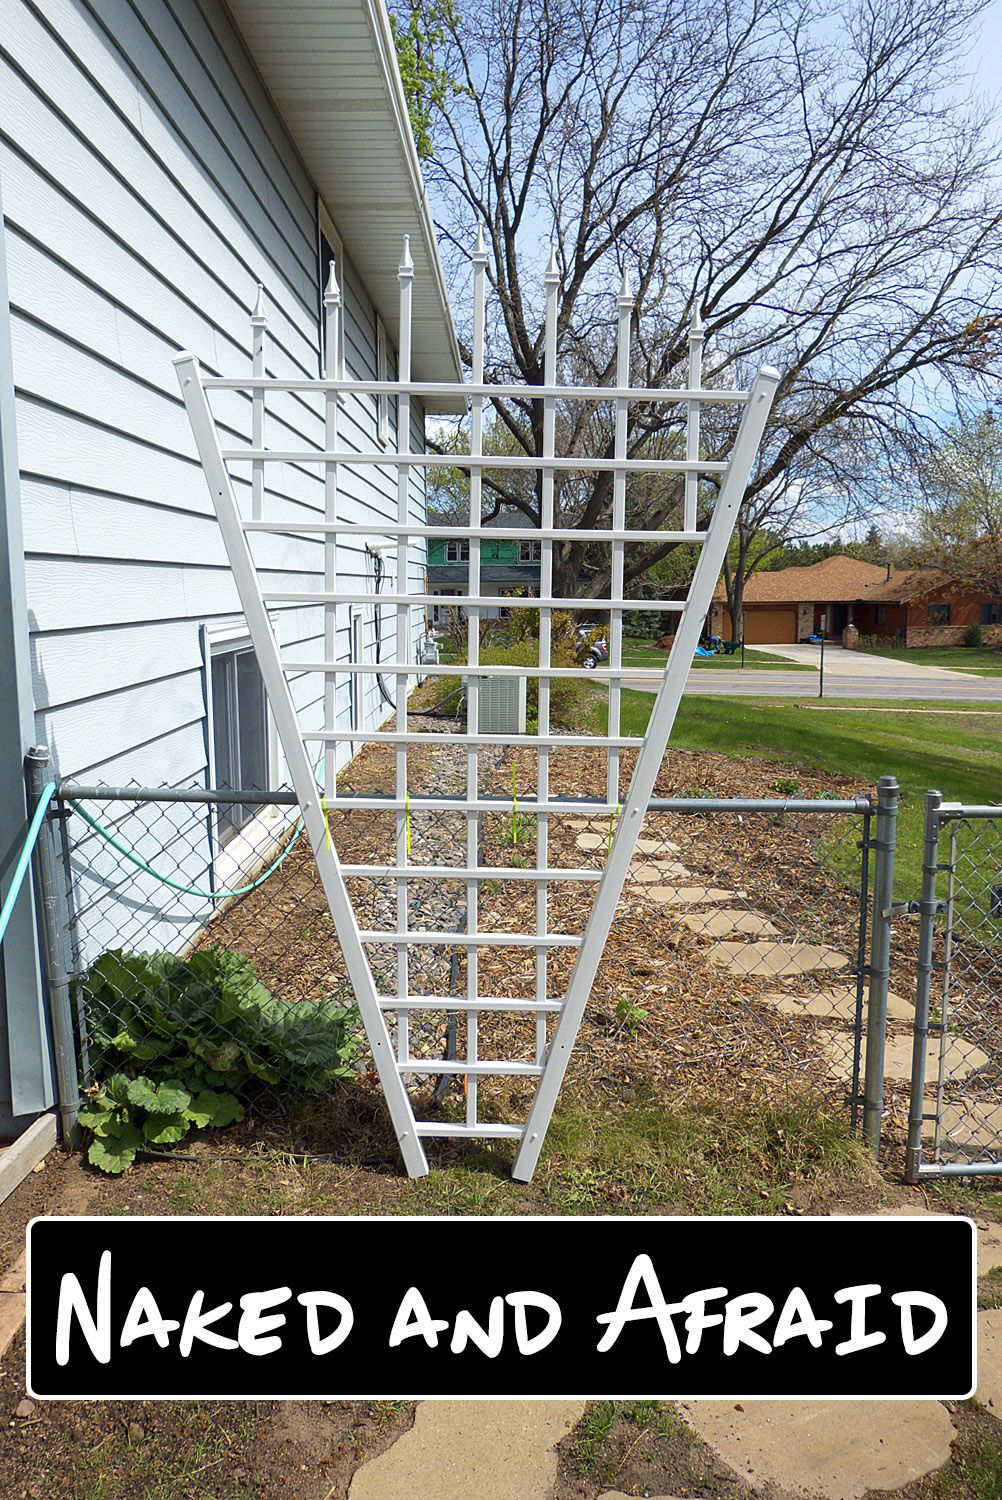 butterfly garden #gardencare Dont leave your Garden Trellis Naked and Afraid- Check out 5 Climbing Plant Ideas that will Cover your Trellis in Vines...and Butterflies!